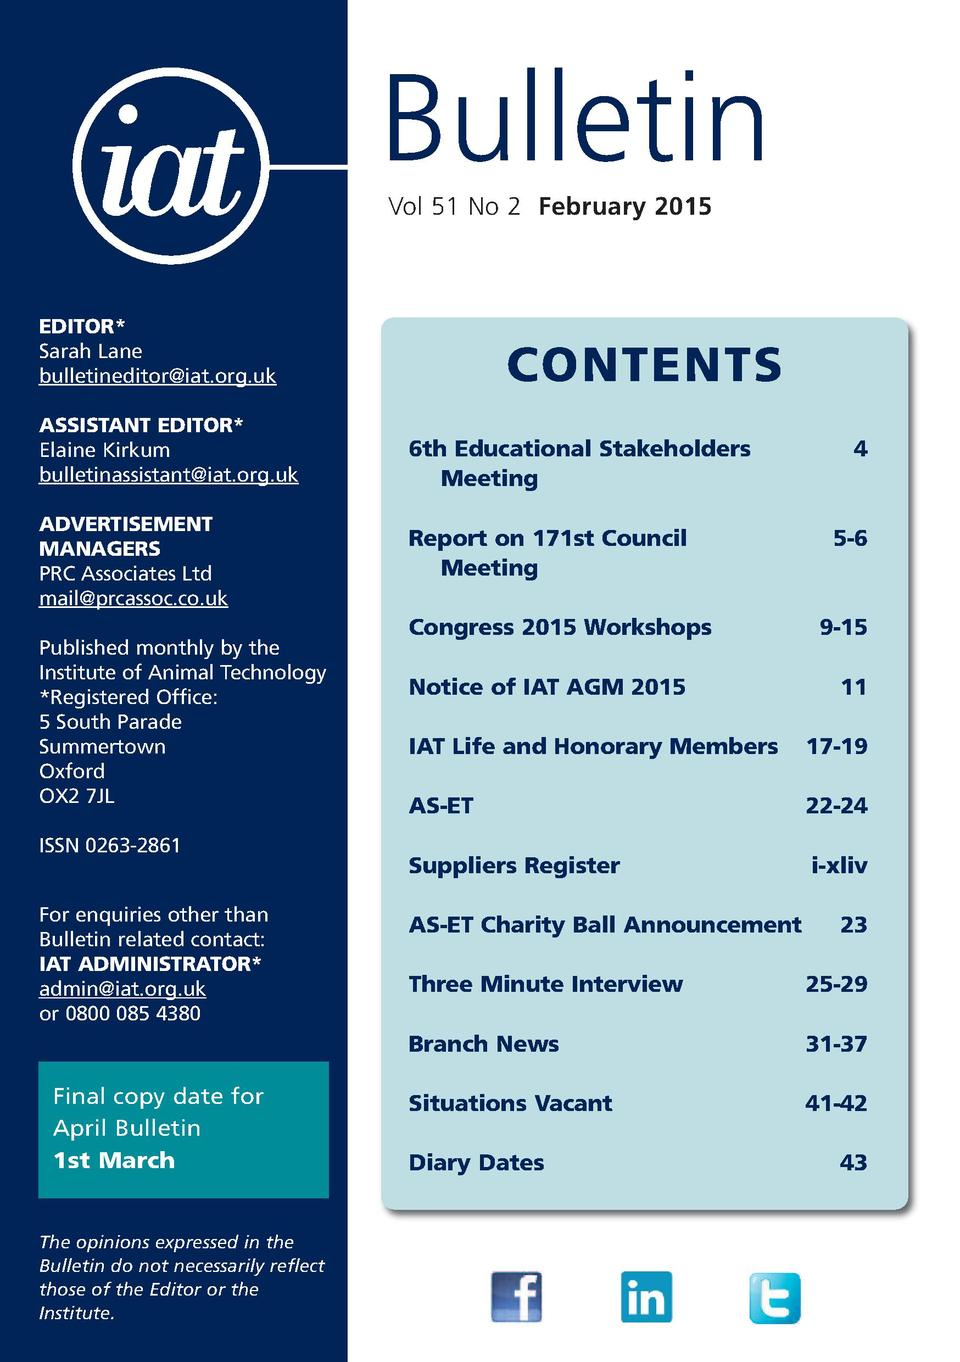 Bulletin Vol 51 No 2 February 2015  EDITOR  Sarah Lane bulletineditor iat.org.uk ASSISTANT EDITOR  Elaine Kirkum bulletina...